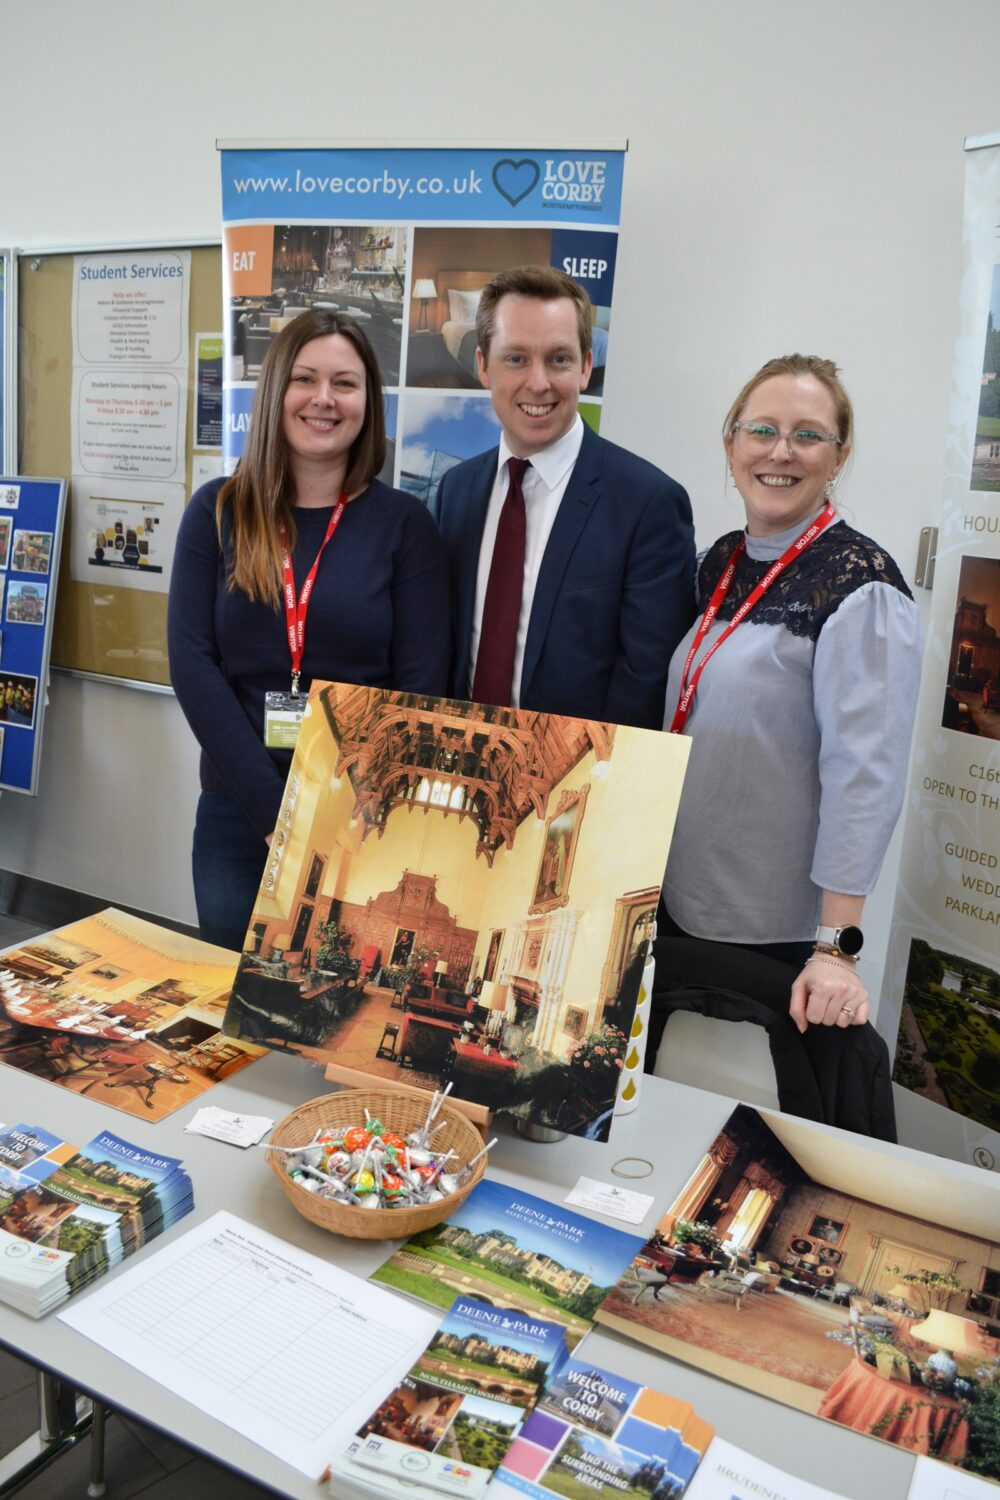 Corby MP Careers Fair at Tresham College Corby Campus